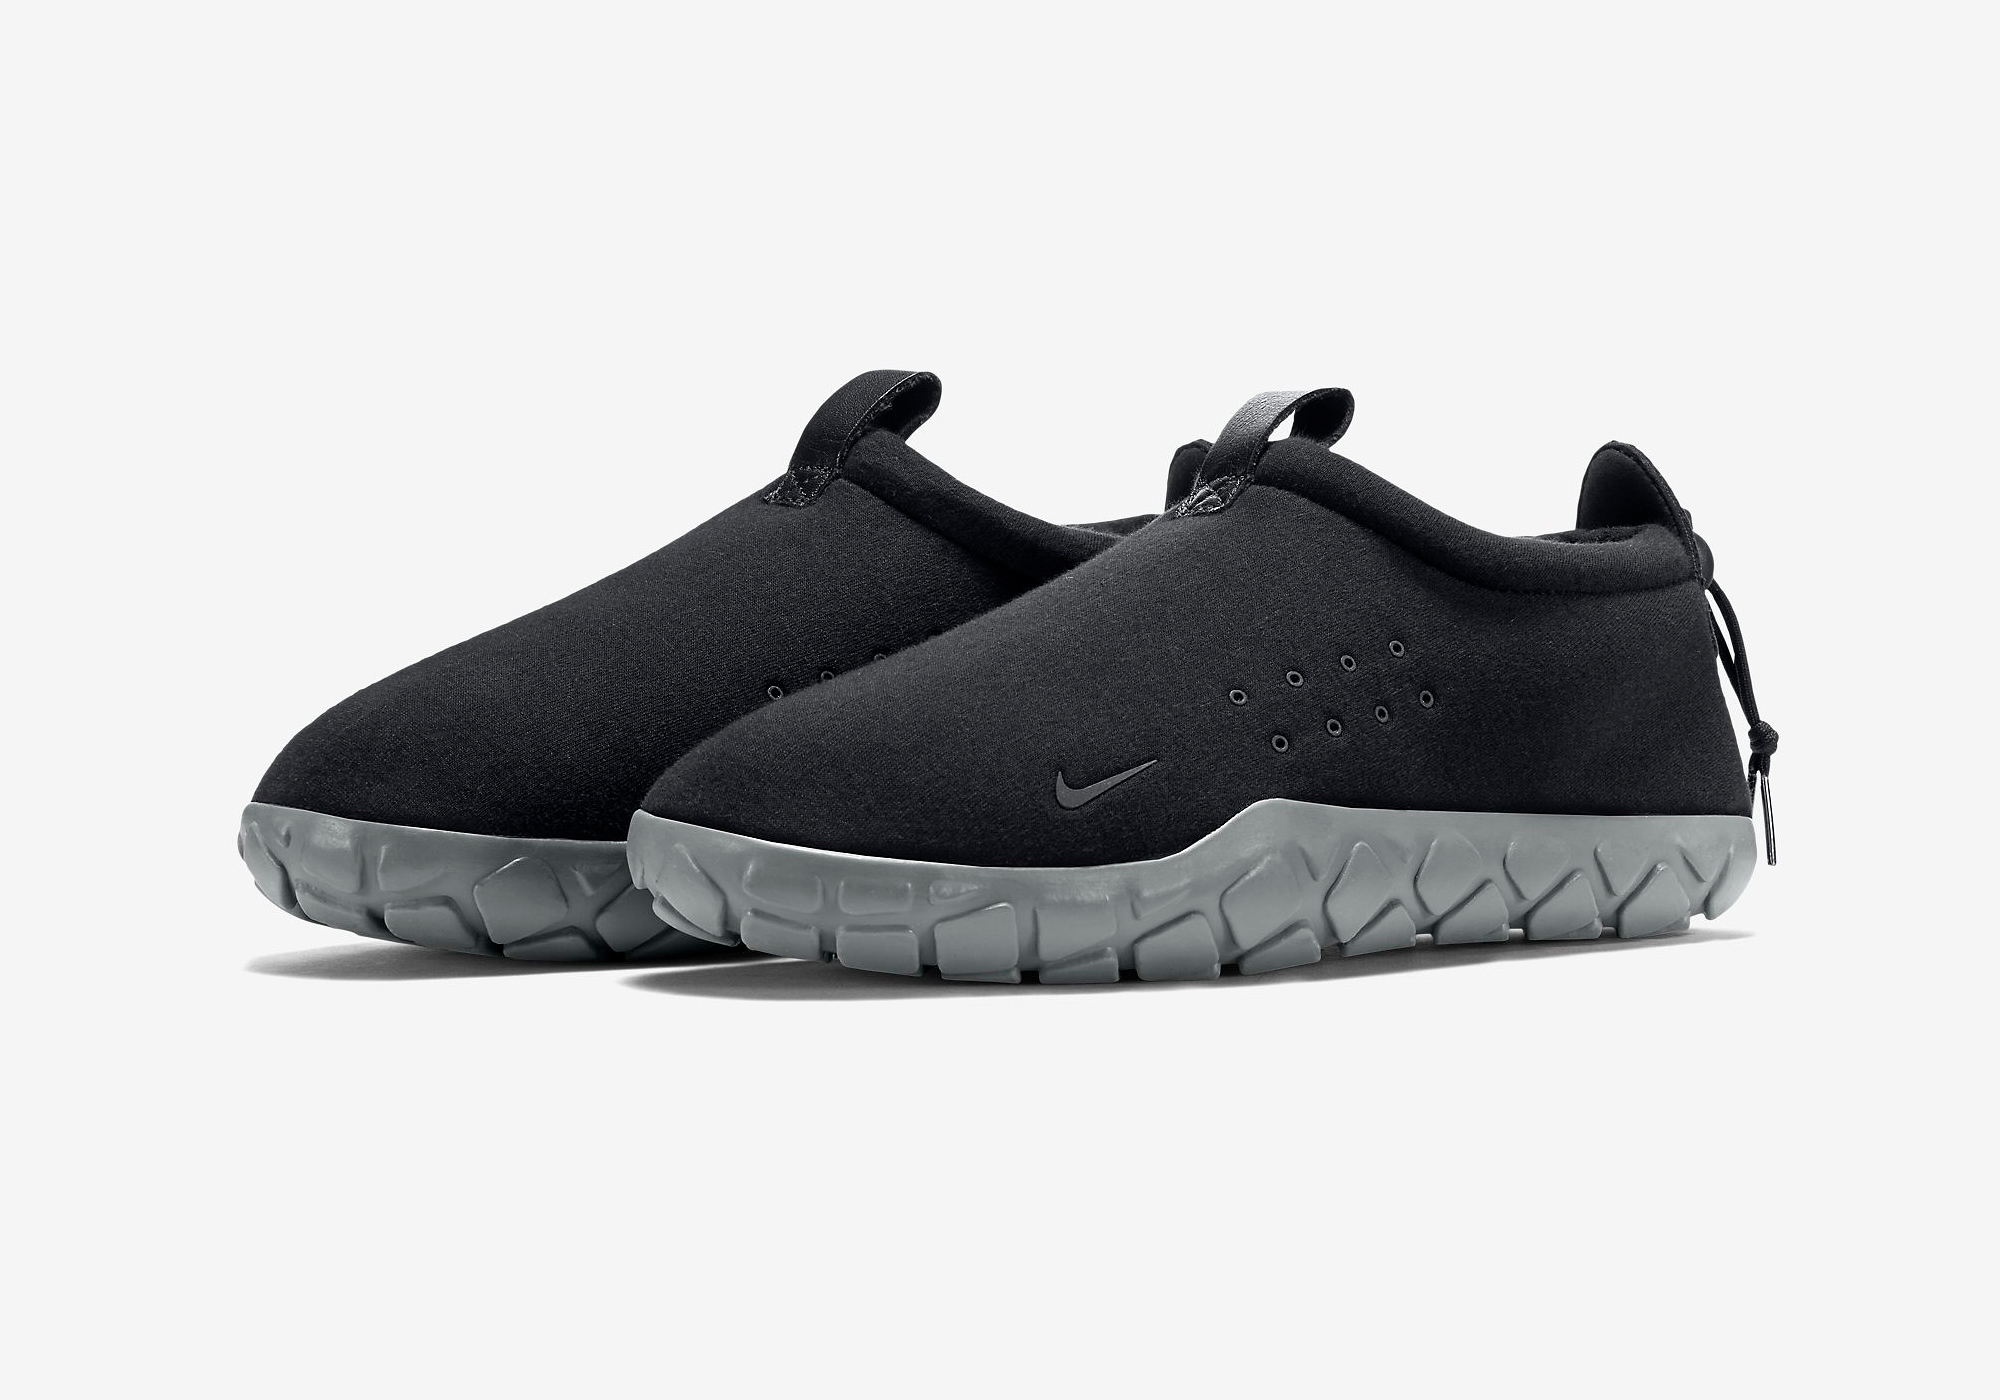 834591-010-nike-air-moc-tech-fleece